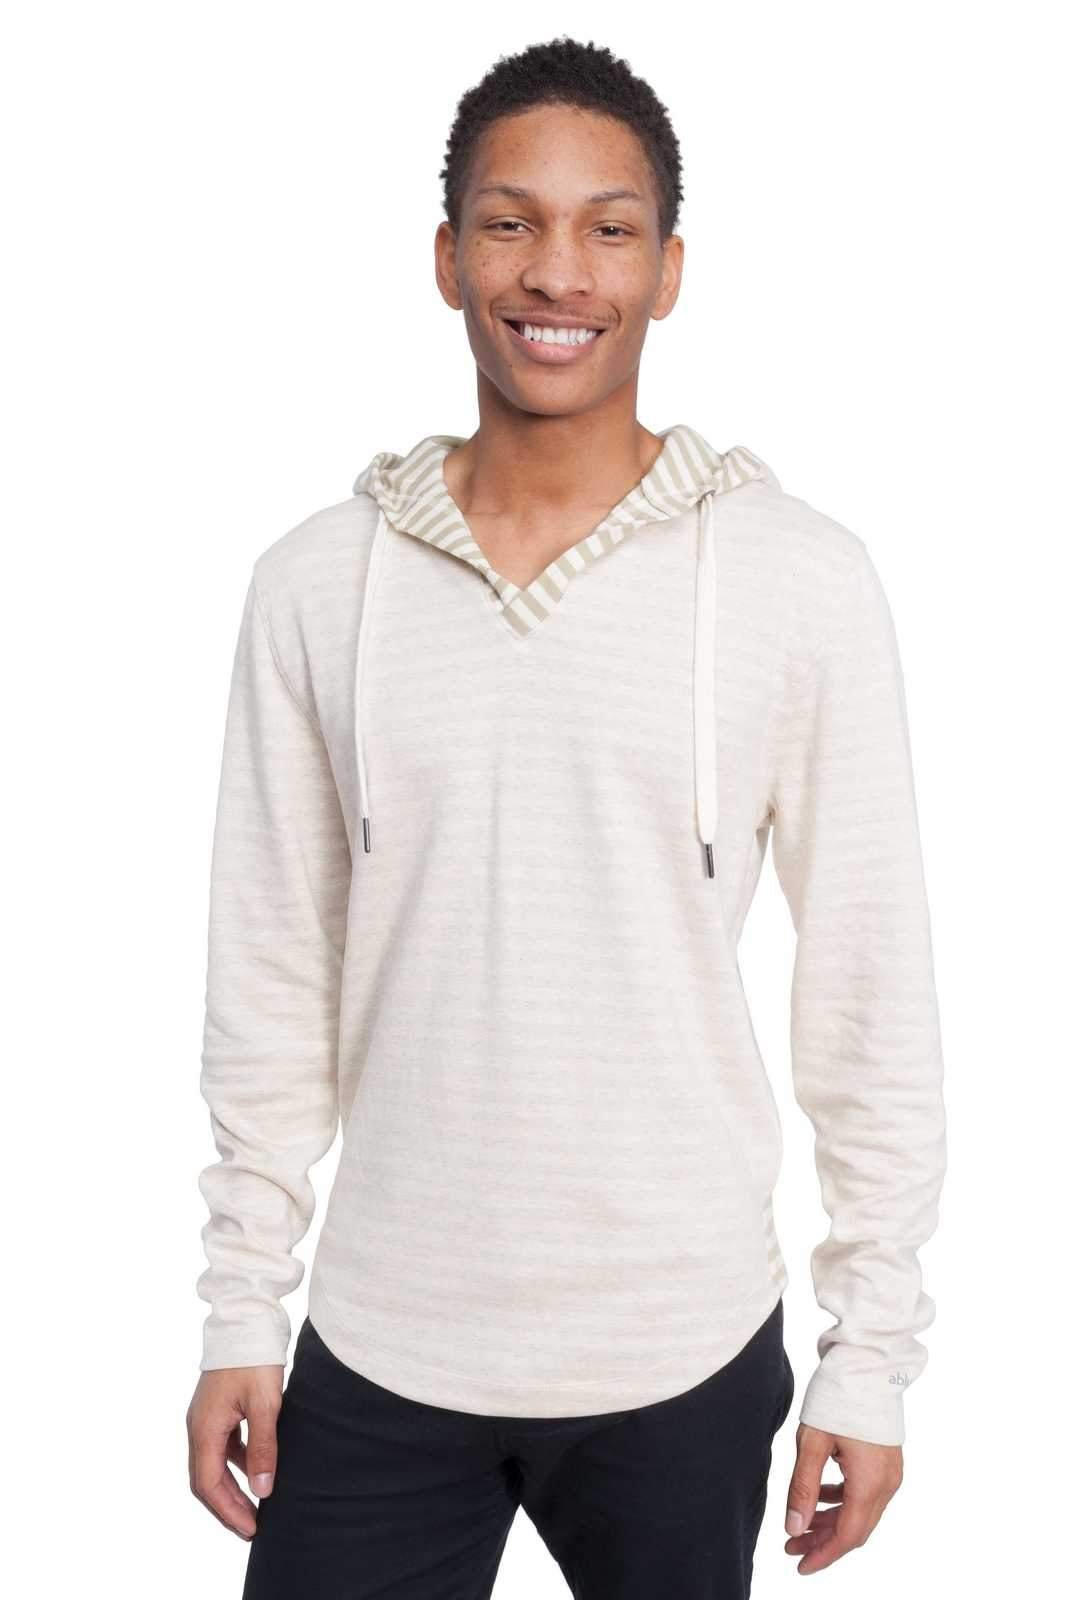 Ably Apparel Rain Plated Knit Hooded Shirt | repels liquids, Stains, and Odors